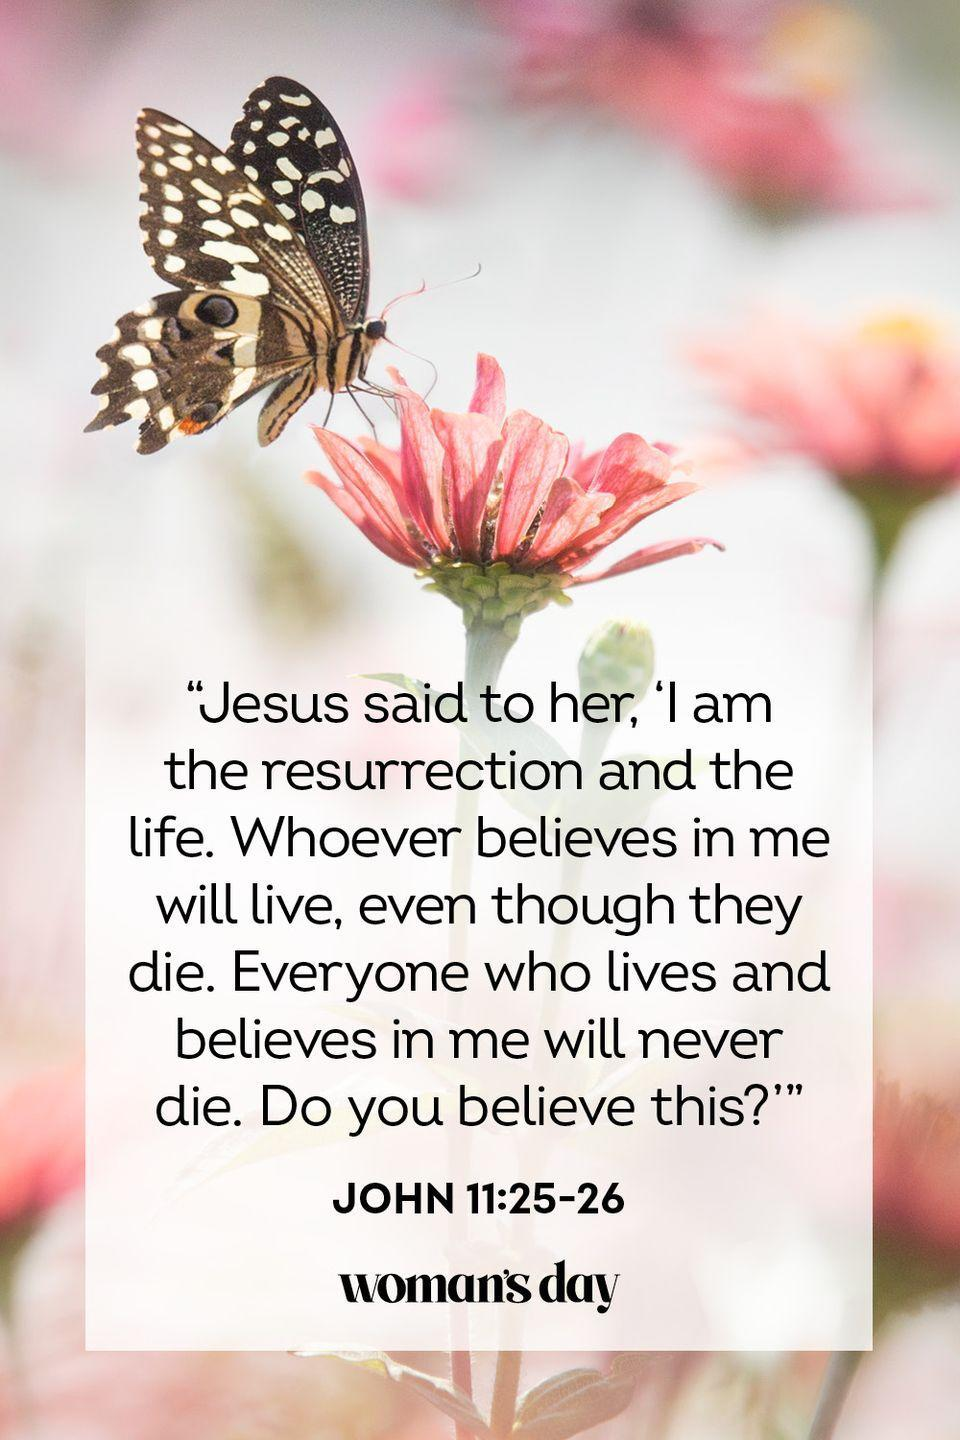 "<p>""Jesus said to her, 'I am the resurrection and the life. Whoever believes in me will live, even though they die. Everyone who lives and believes in me will never die. Do you believe this?'""— John 11:25-26</p>"